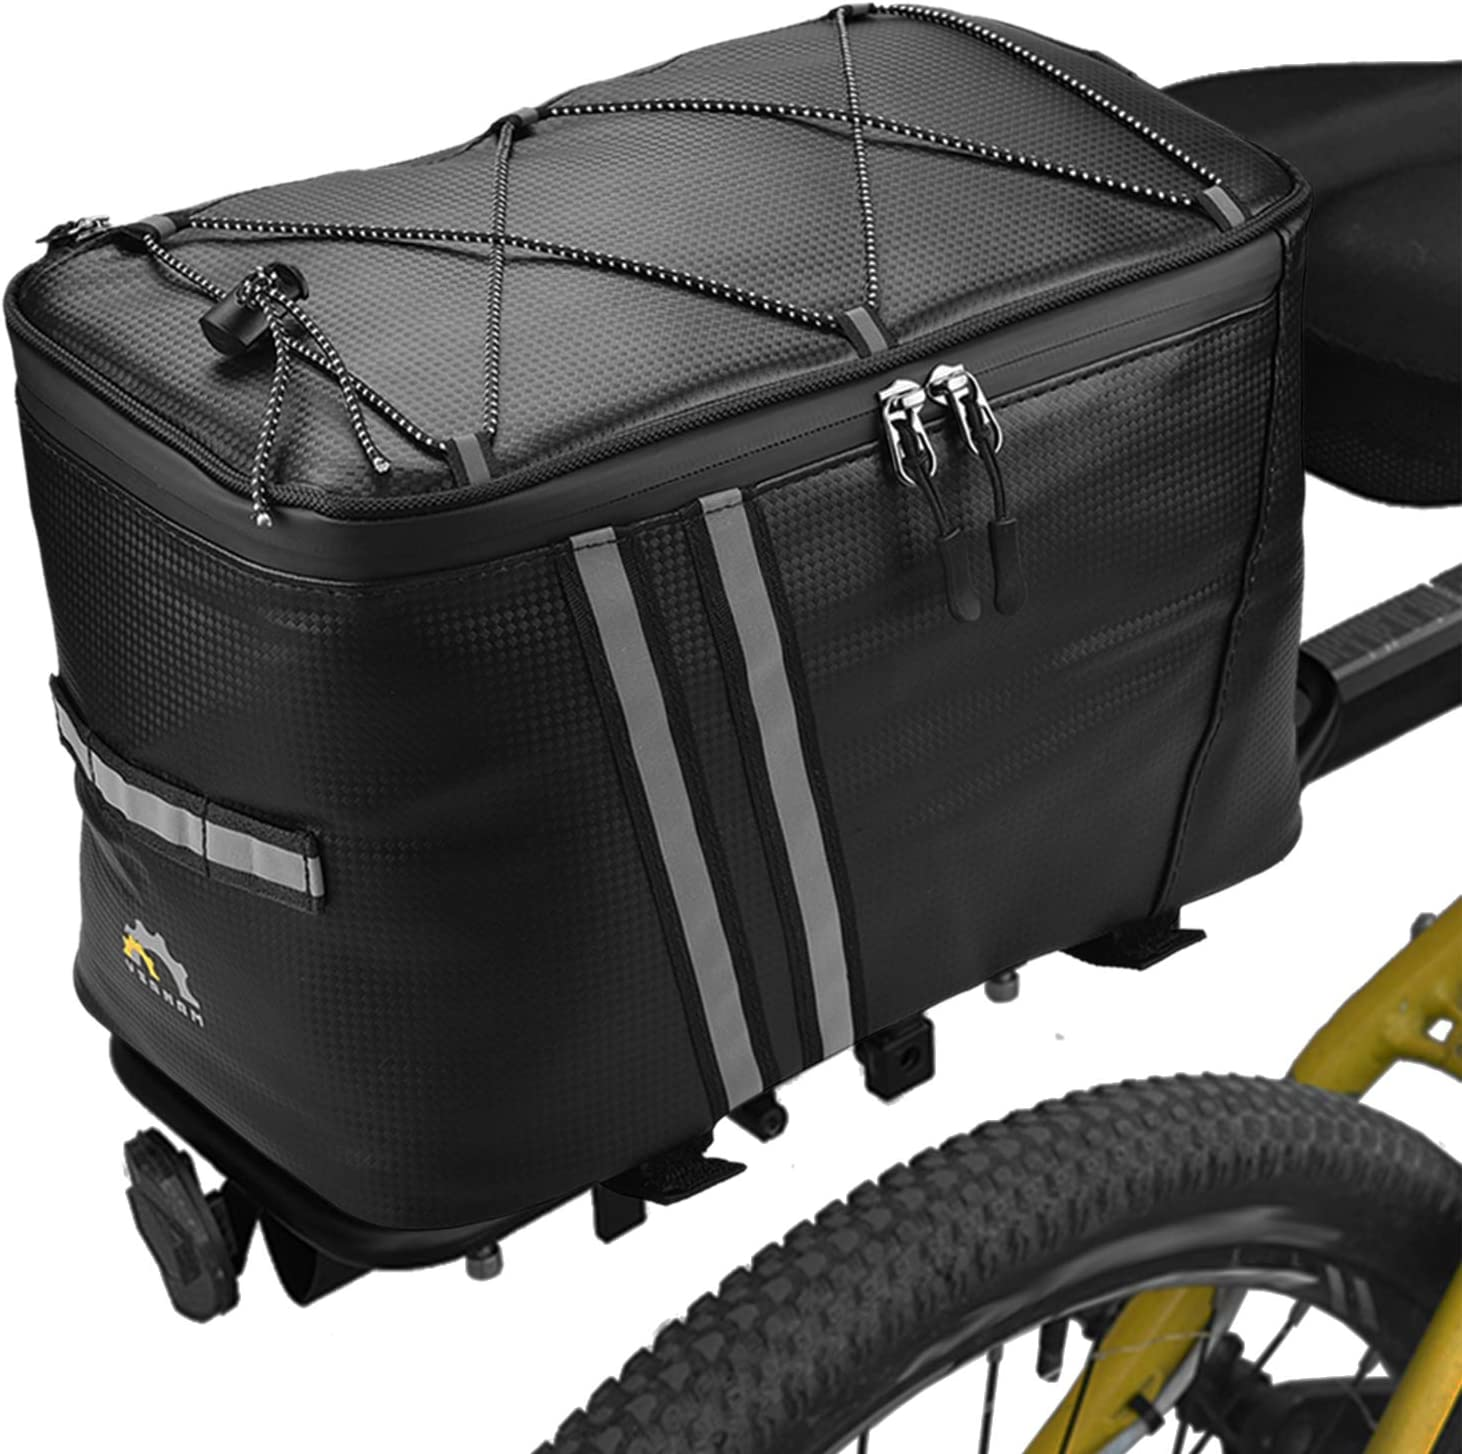 Lixada Bicycle Rack Rear Carrier Bag 12L Bike Trunk Bag with Thermal Insulation Waterproof Bike Storage Luggage Pannier Bag Without Rain Cover